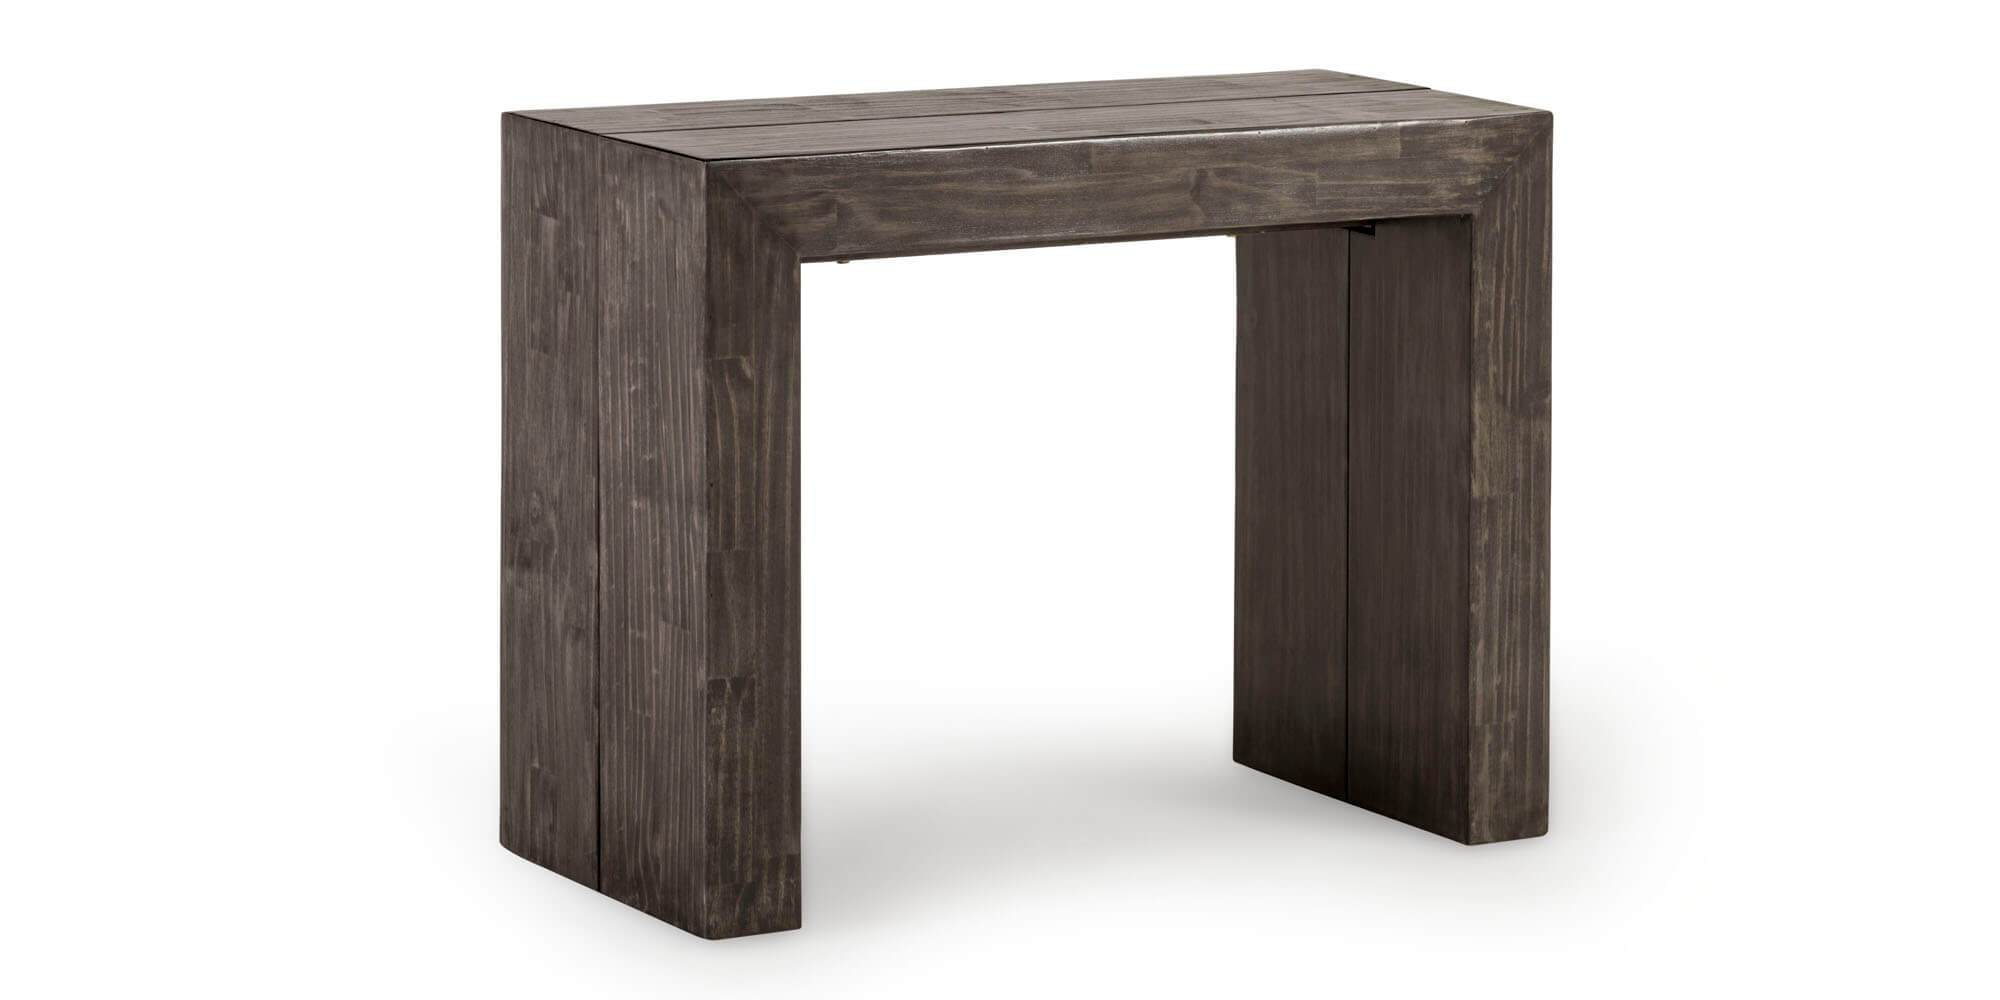 Transformer Table 2.0 + Birch Grey